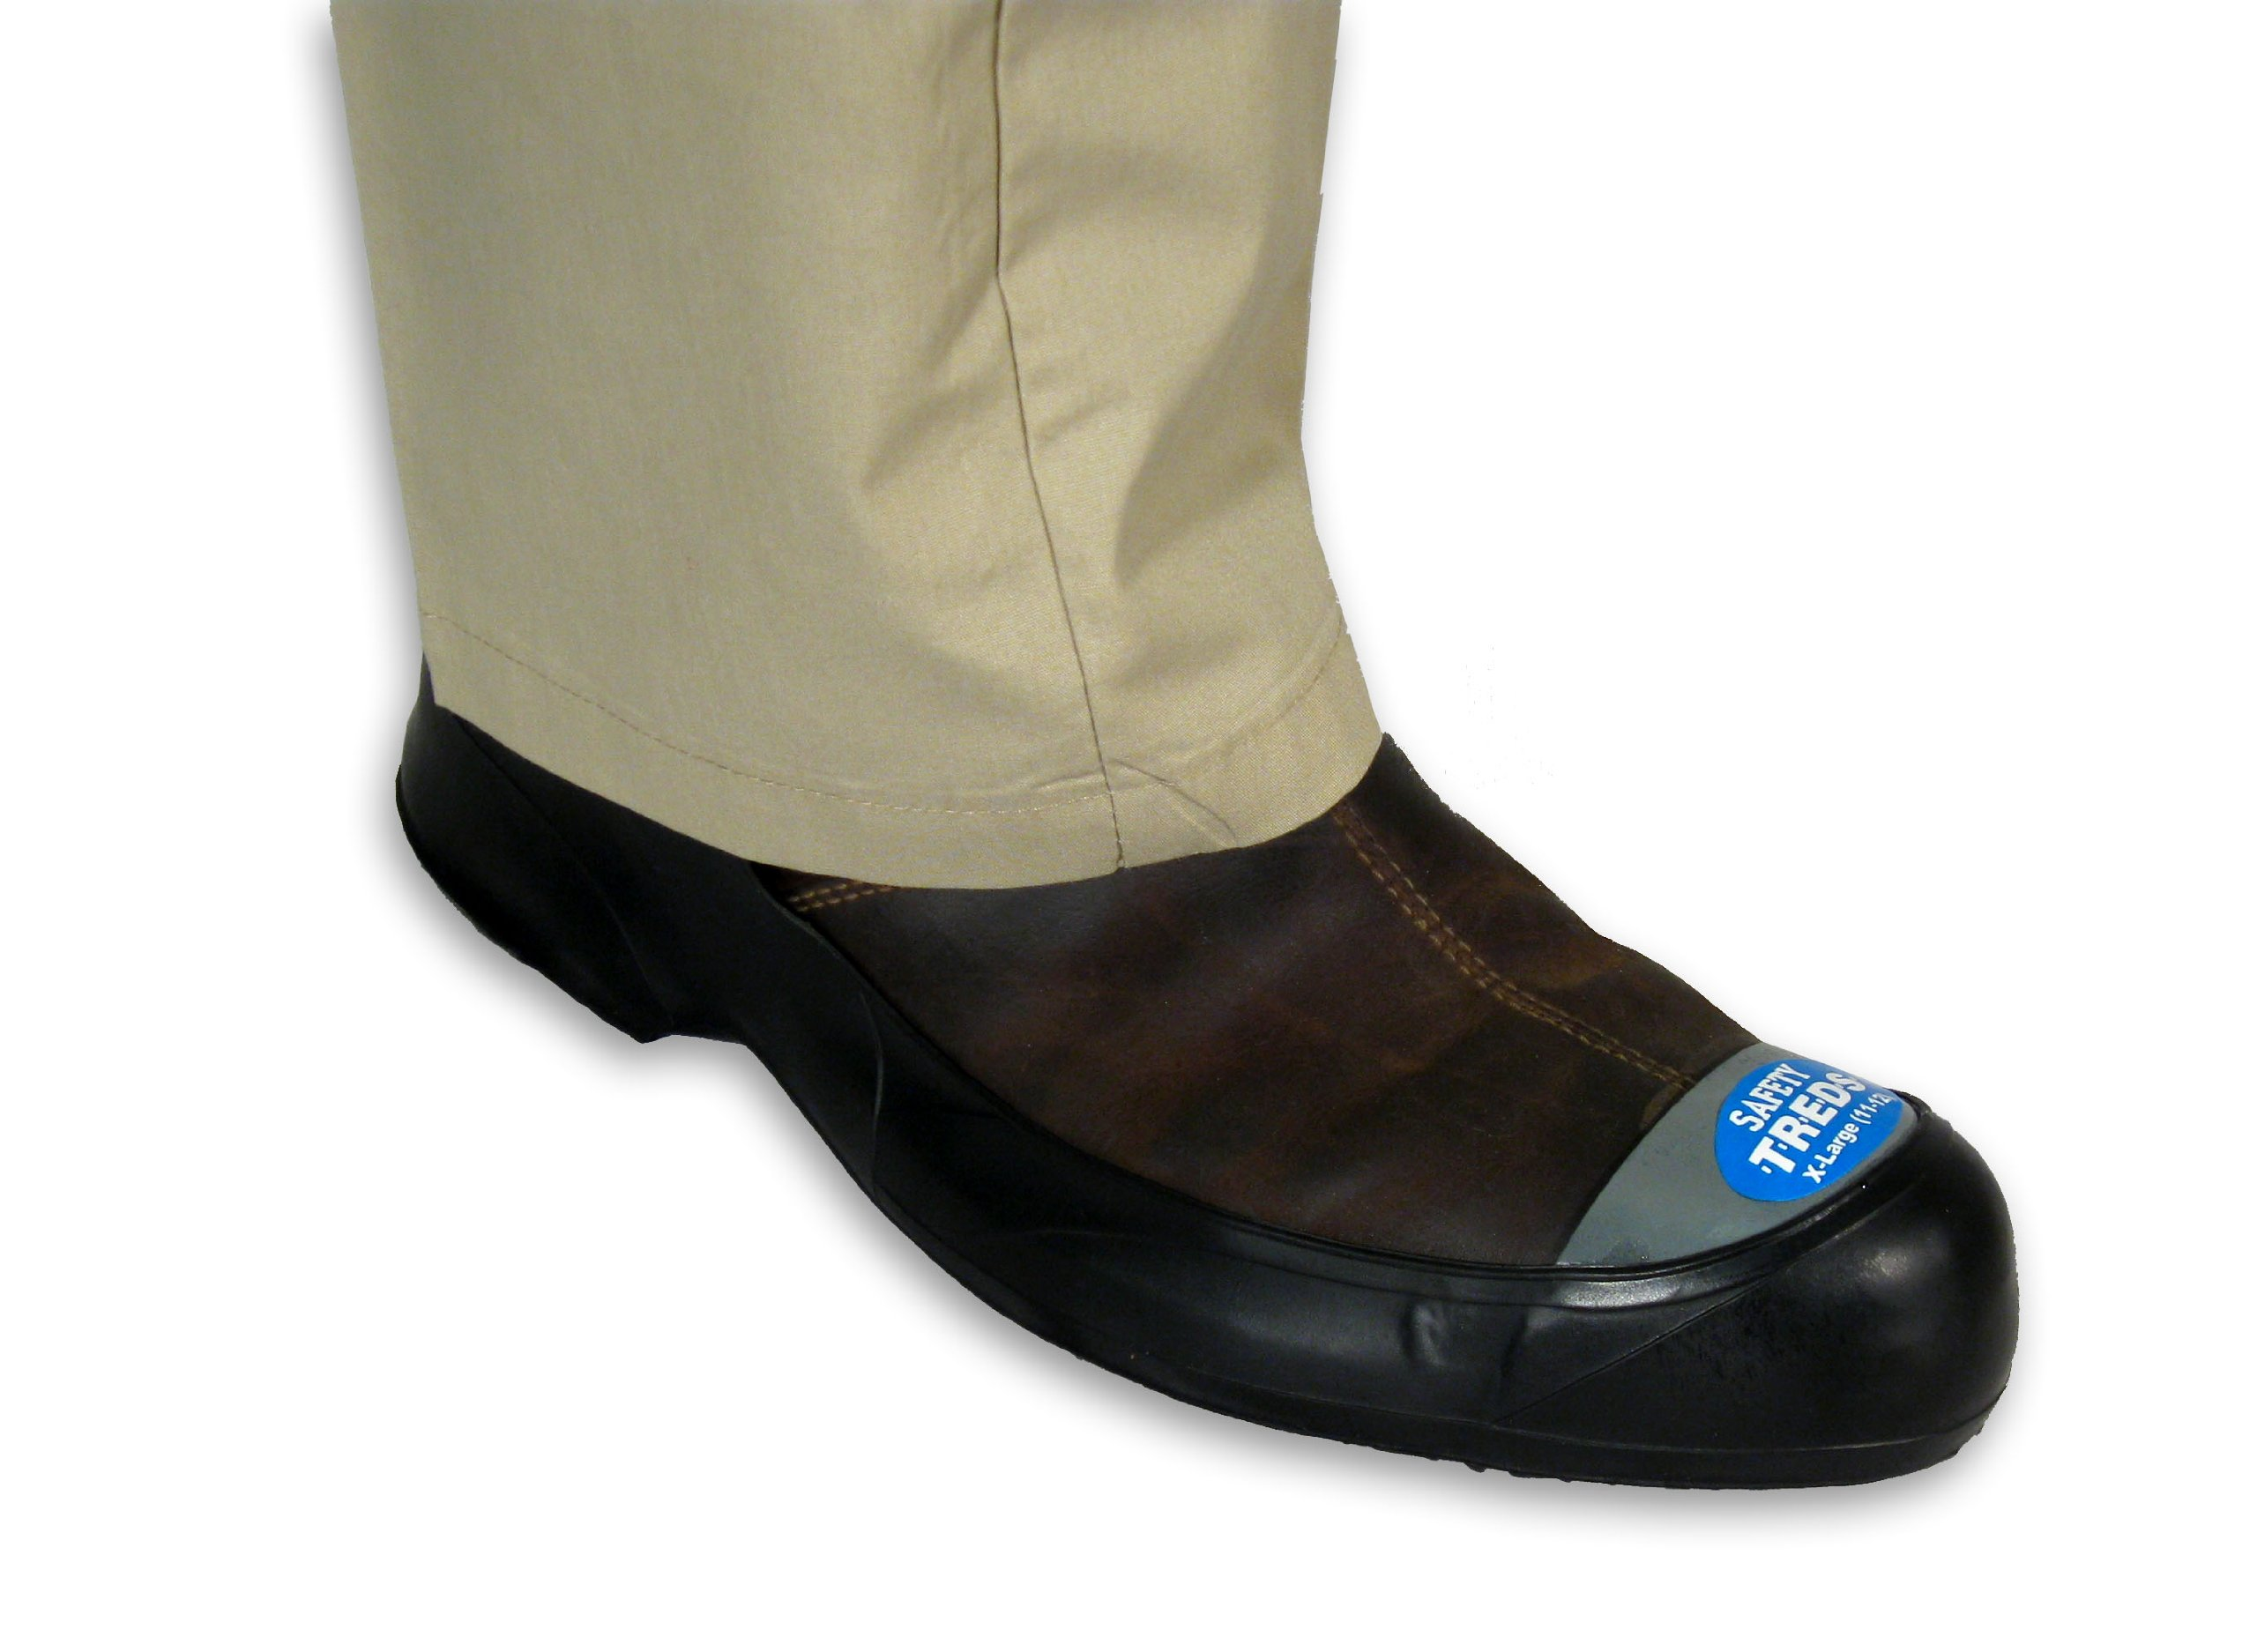 SAFETY TREDS 13432 Rubber Overshoes for Dress Shoes with Safety Toe, Large (One Pair)